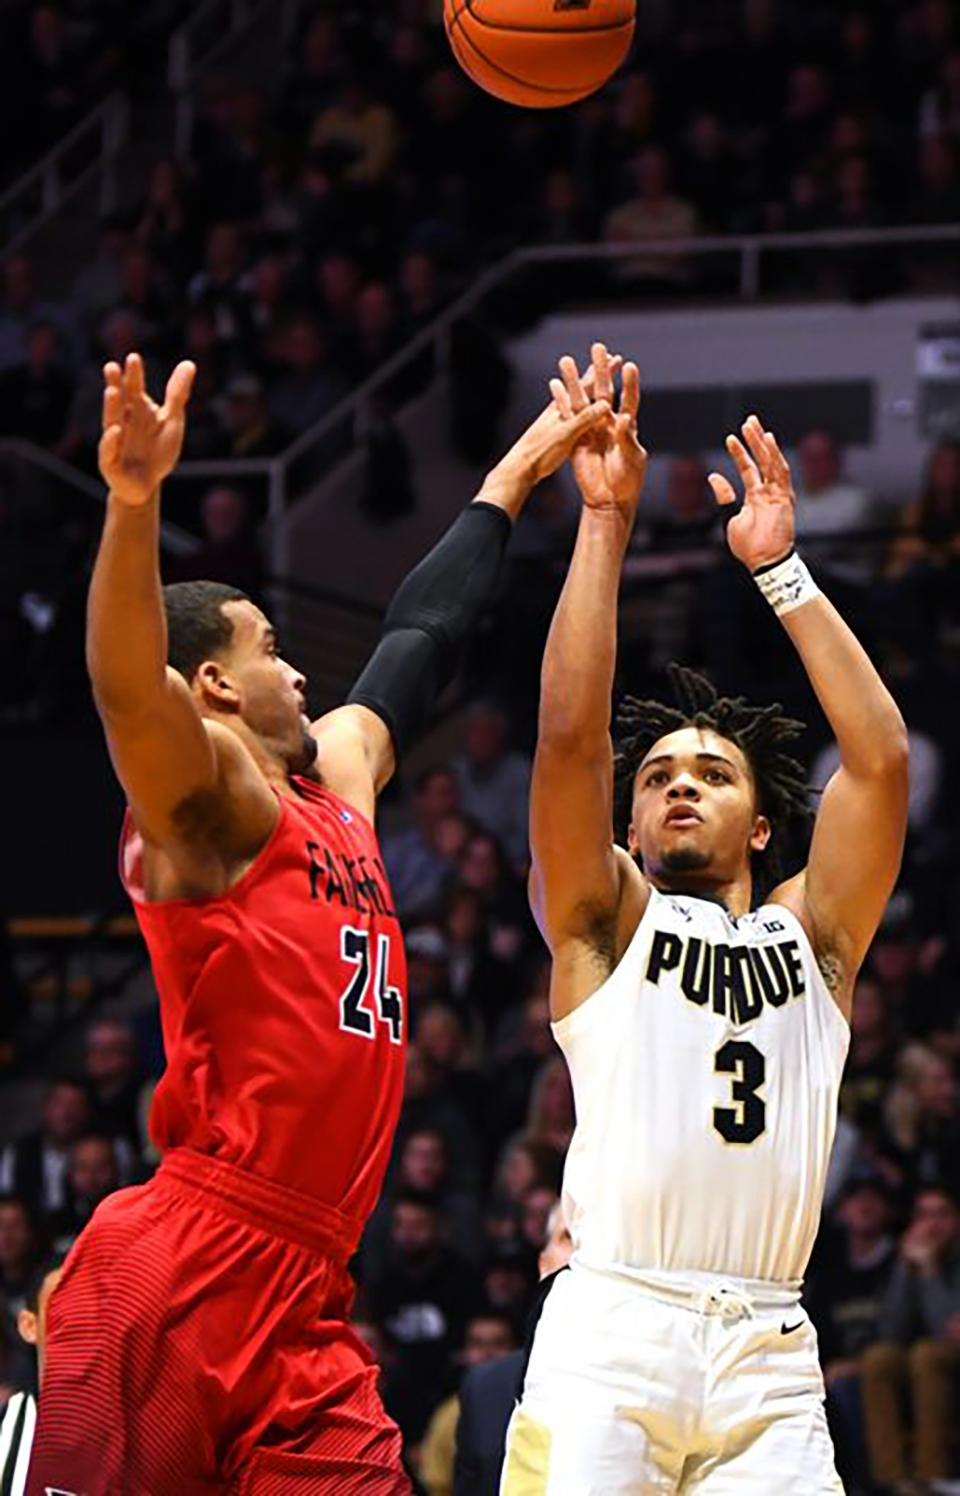 sports_carsen edwards journal & courier (ill.)